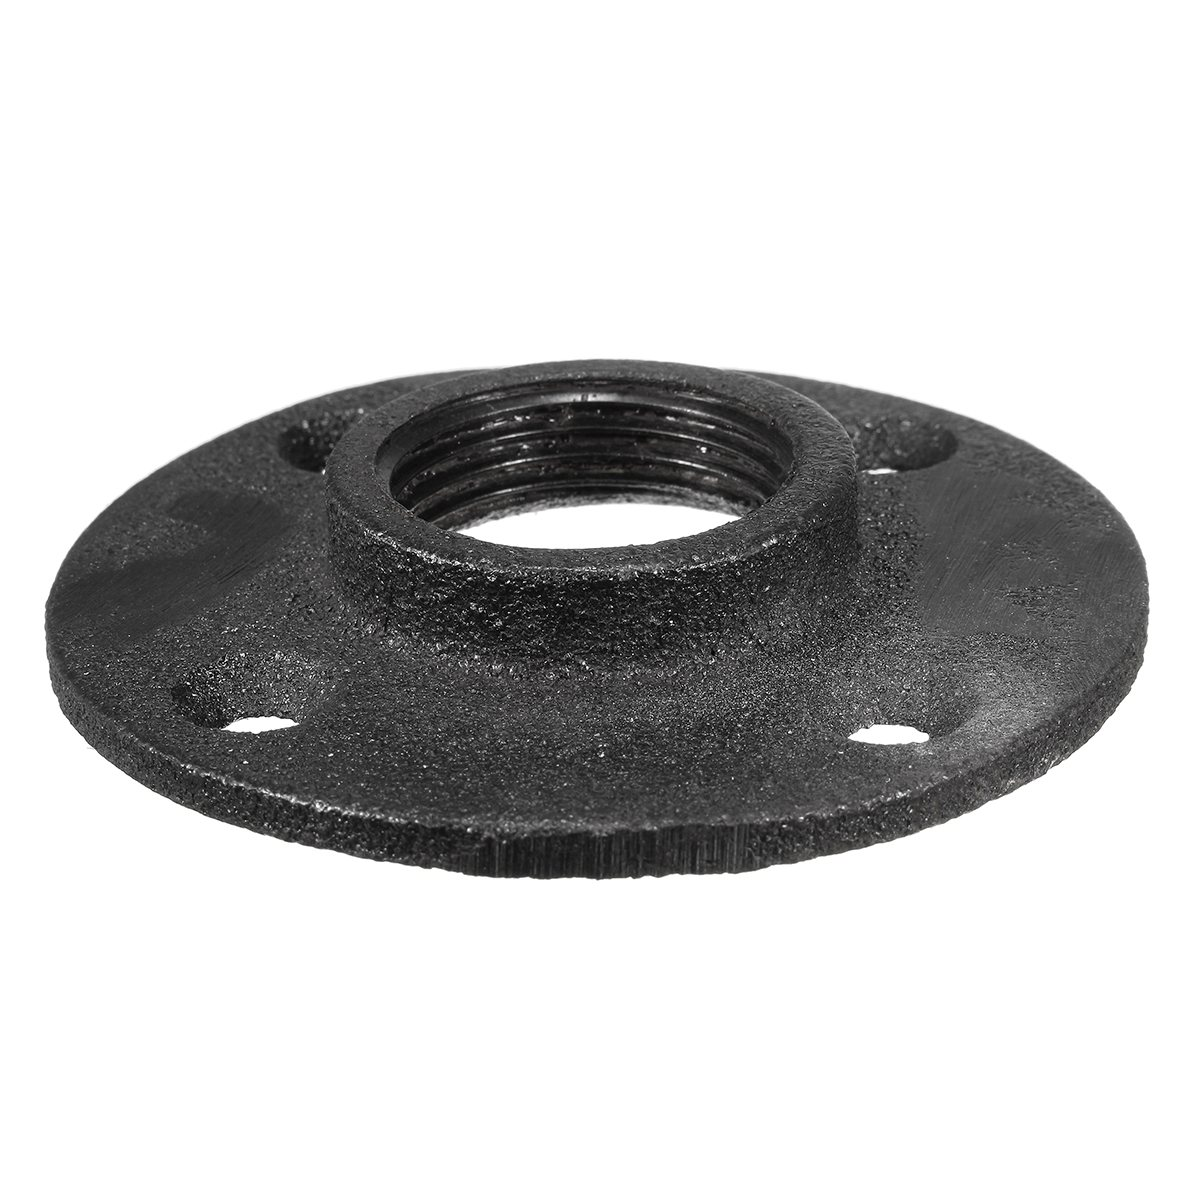 industrial furniture hardware. New 1\u0027\u0027 Black Malleable Threaded Floor Flange Iron Plumbing Pipe Fitting Repalcement Industrial Furniture Hardware Tool-in Flanges From Home Improvement On L